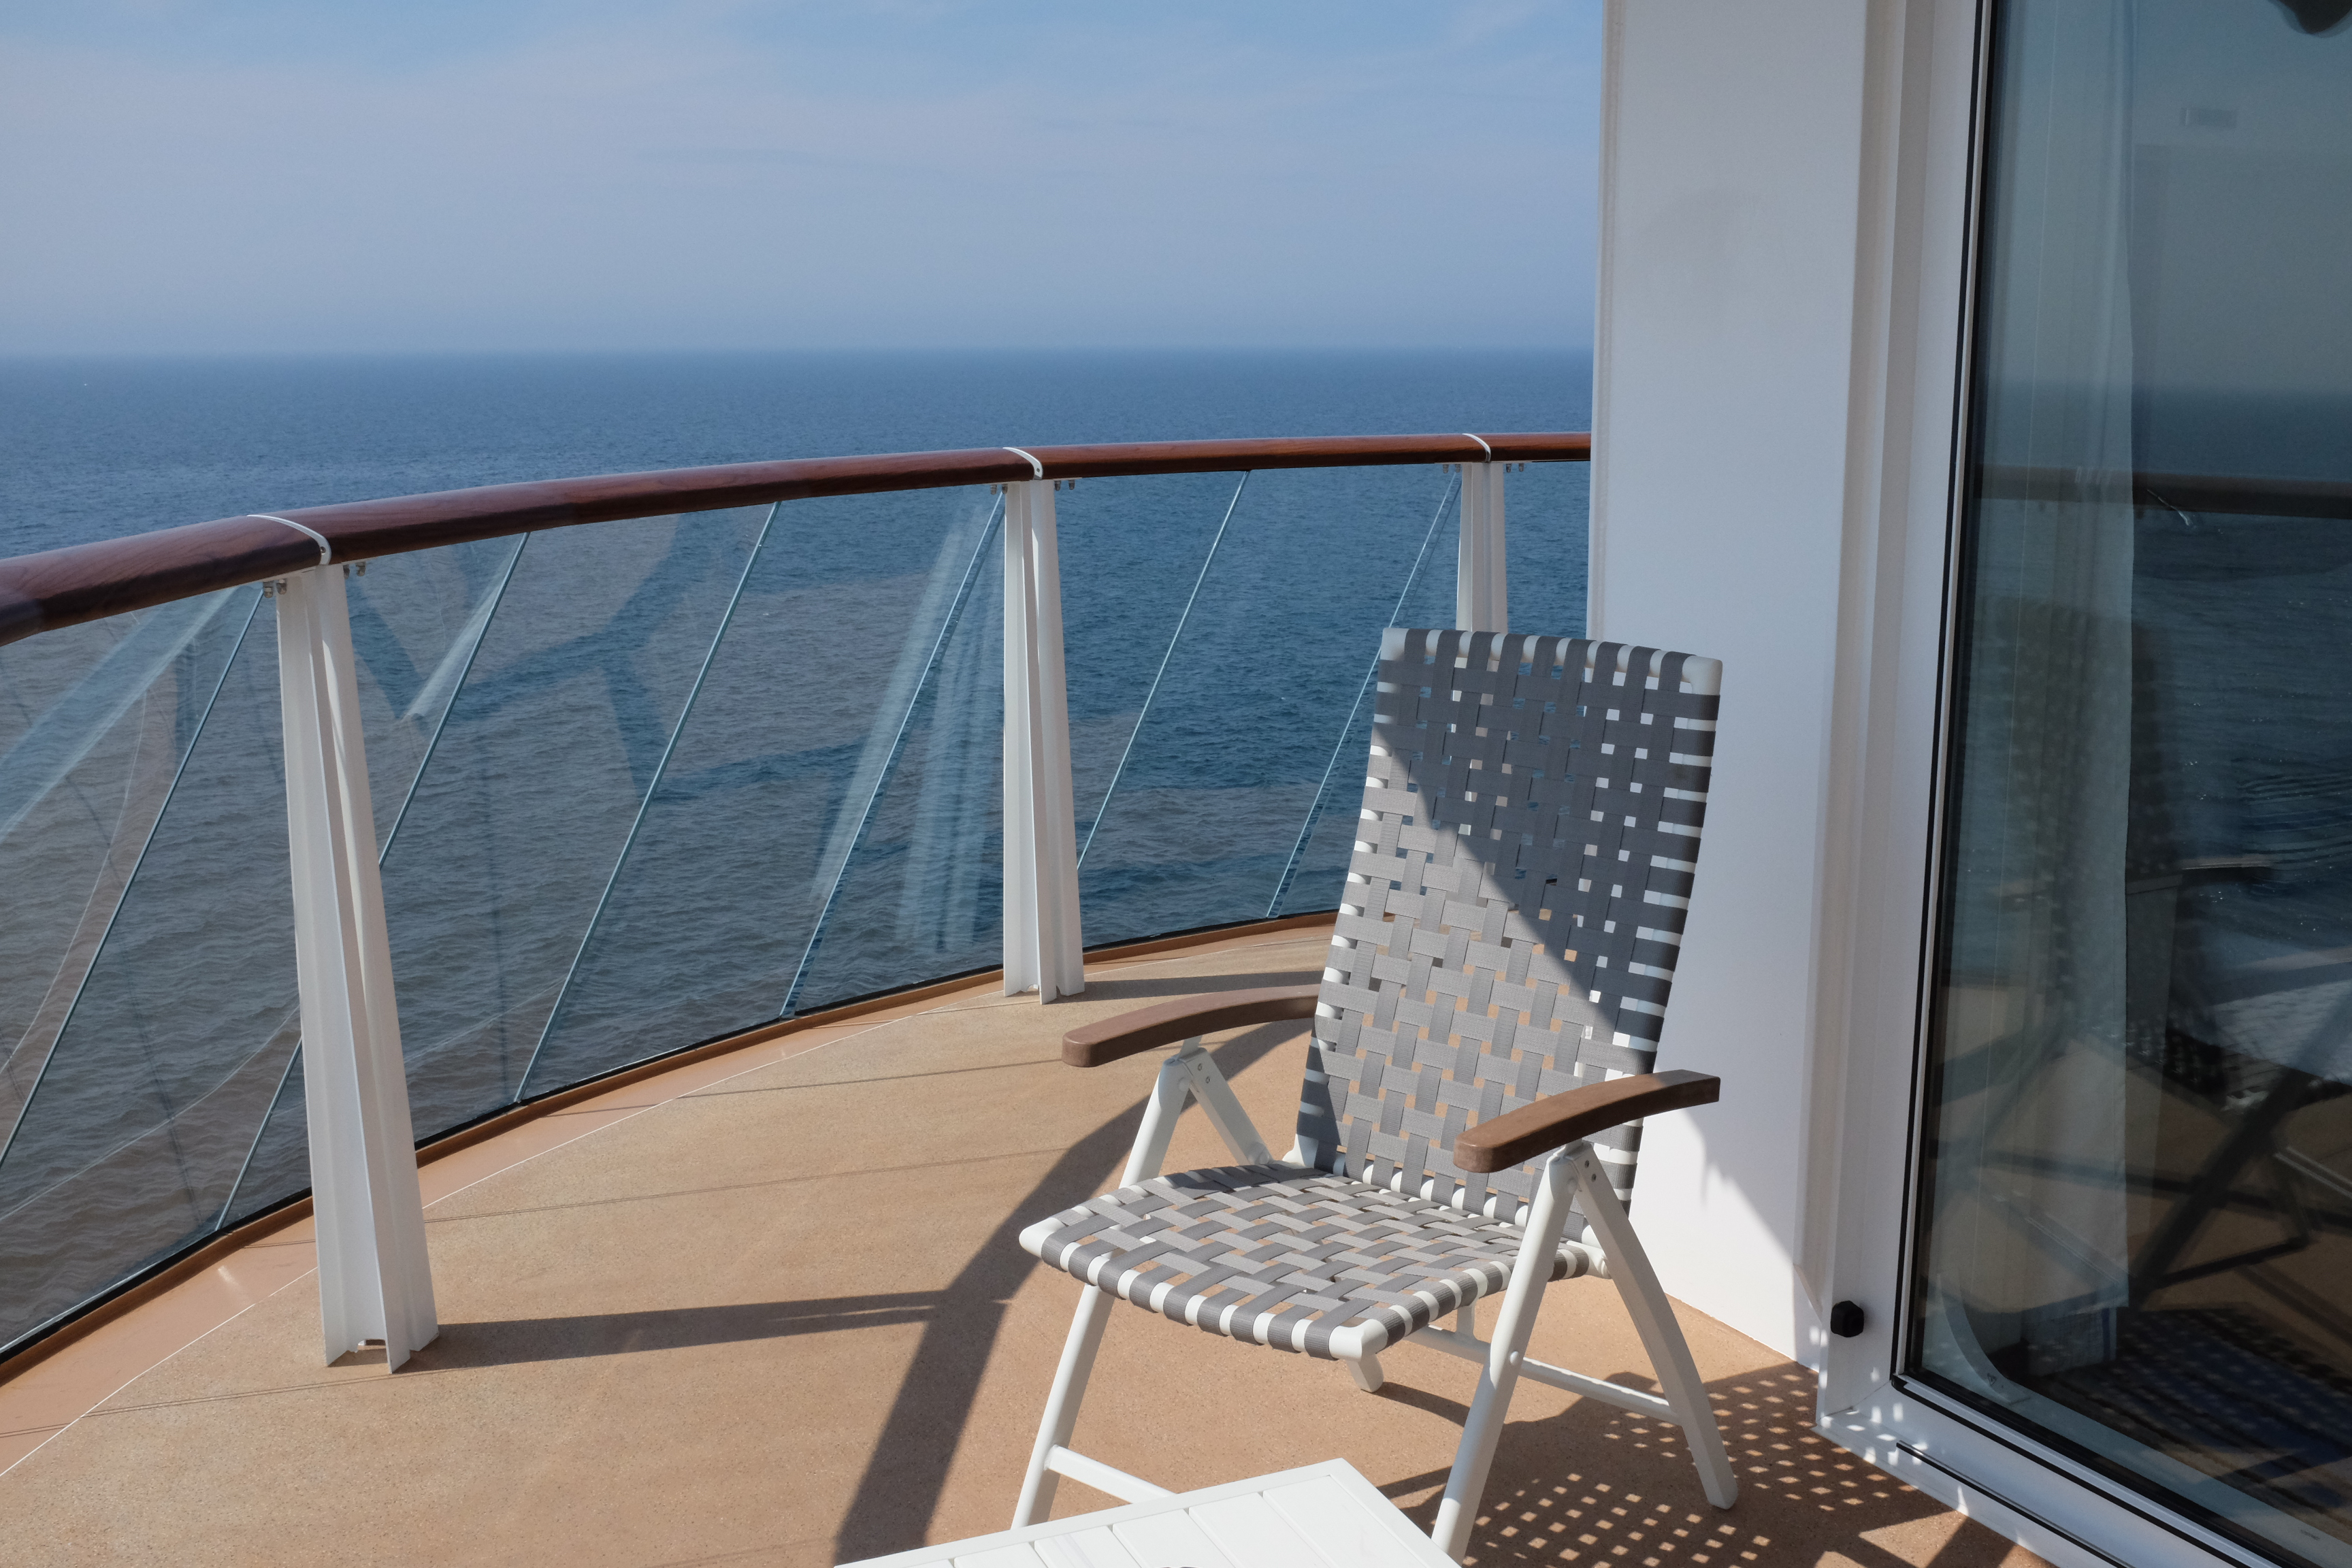 mein schiff 3 premium verandakabine 7195 balkon veranda das mein schiff forum von. Black Bedroom Furniture Sets. Home Design Ideas